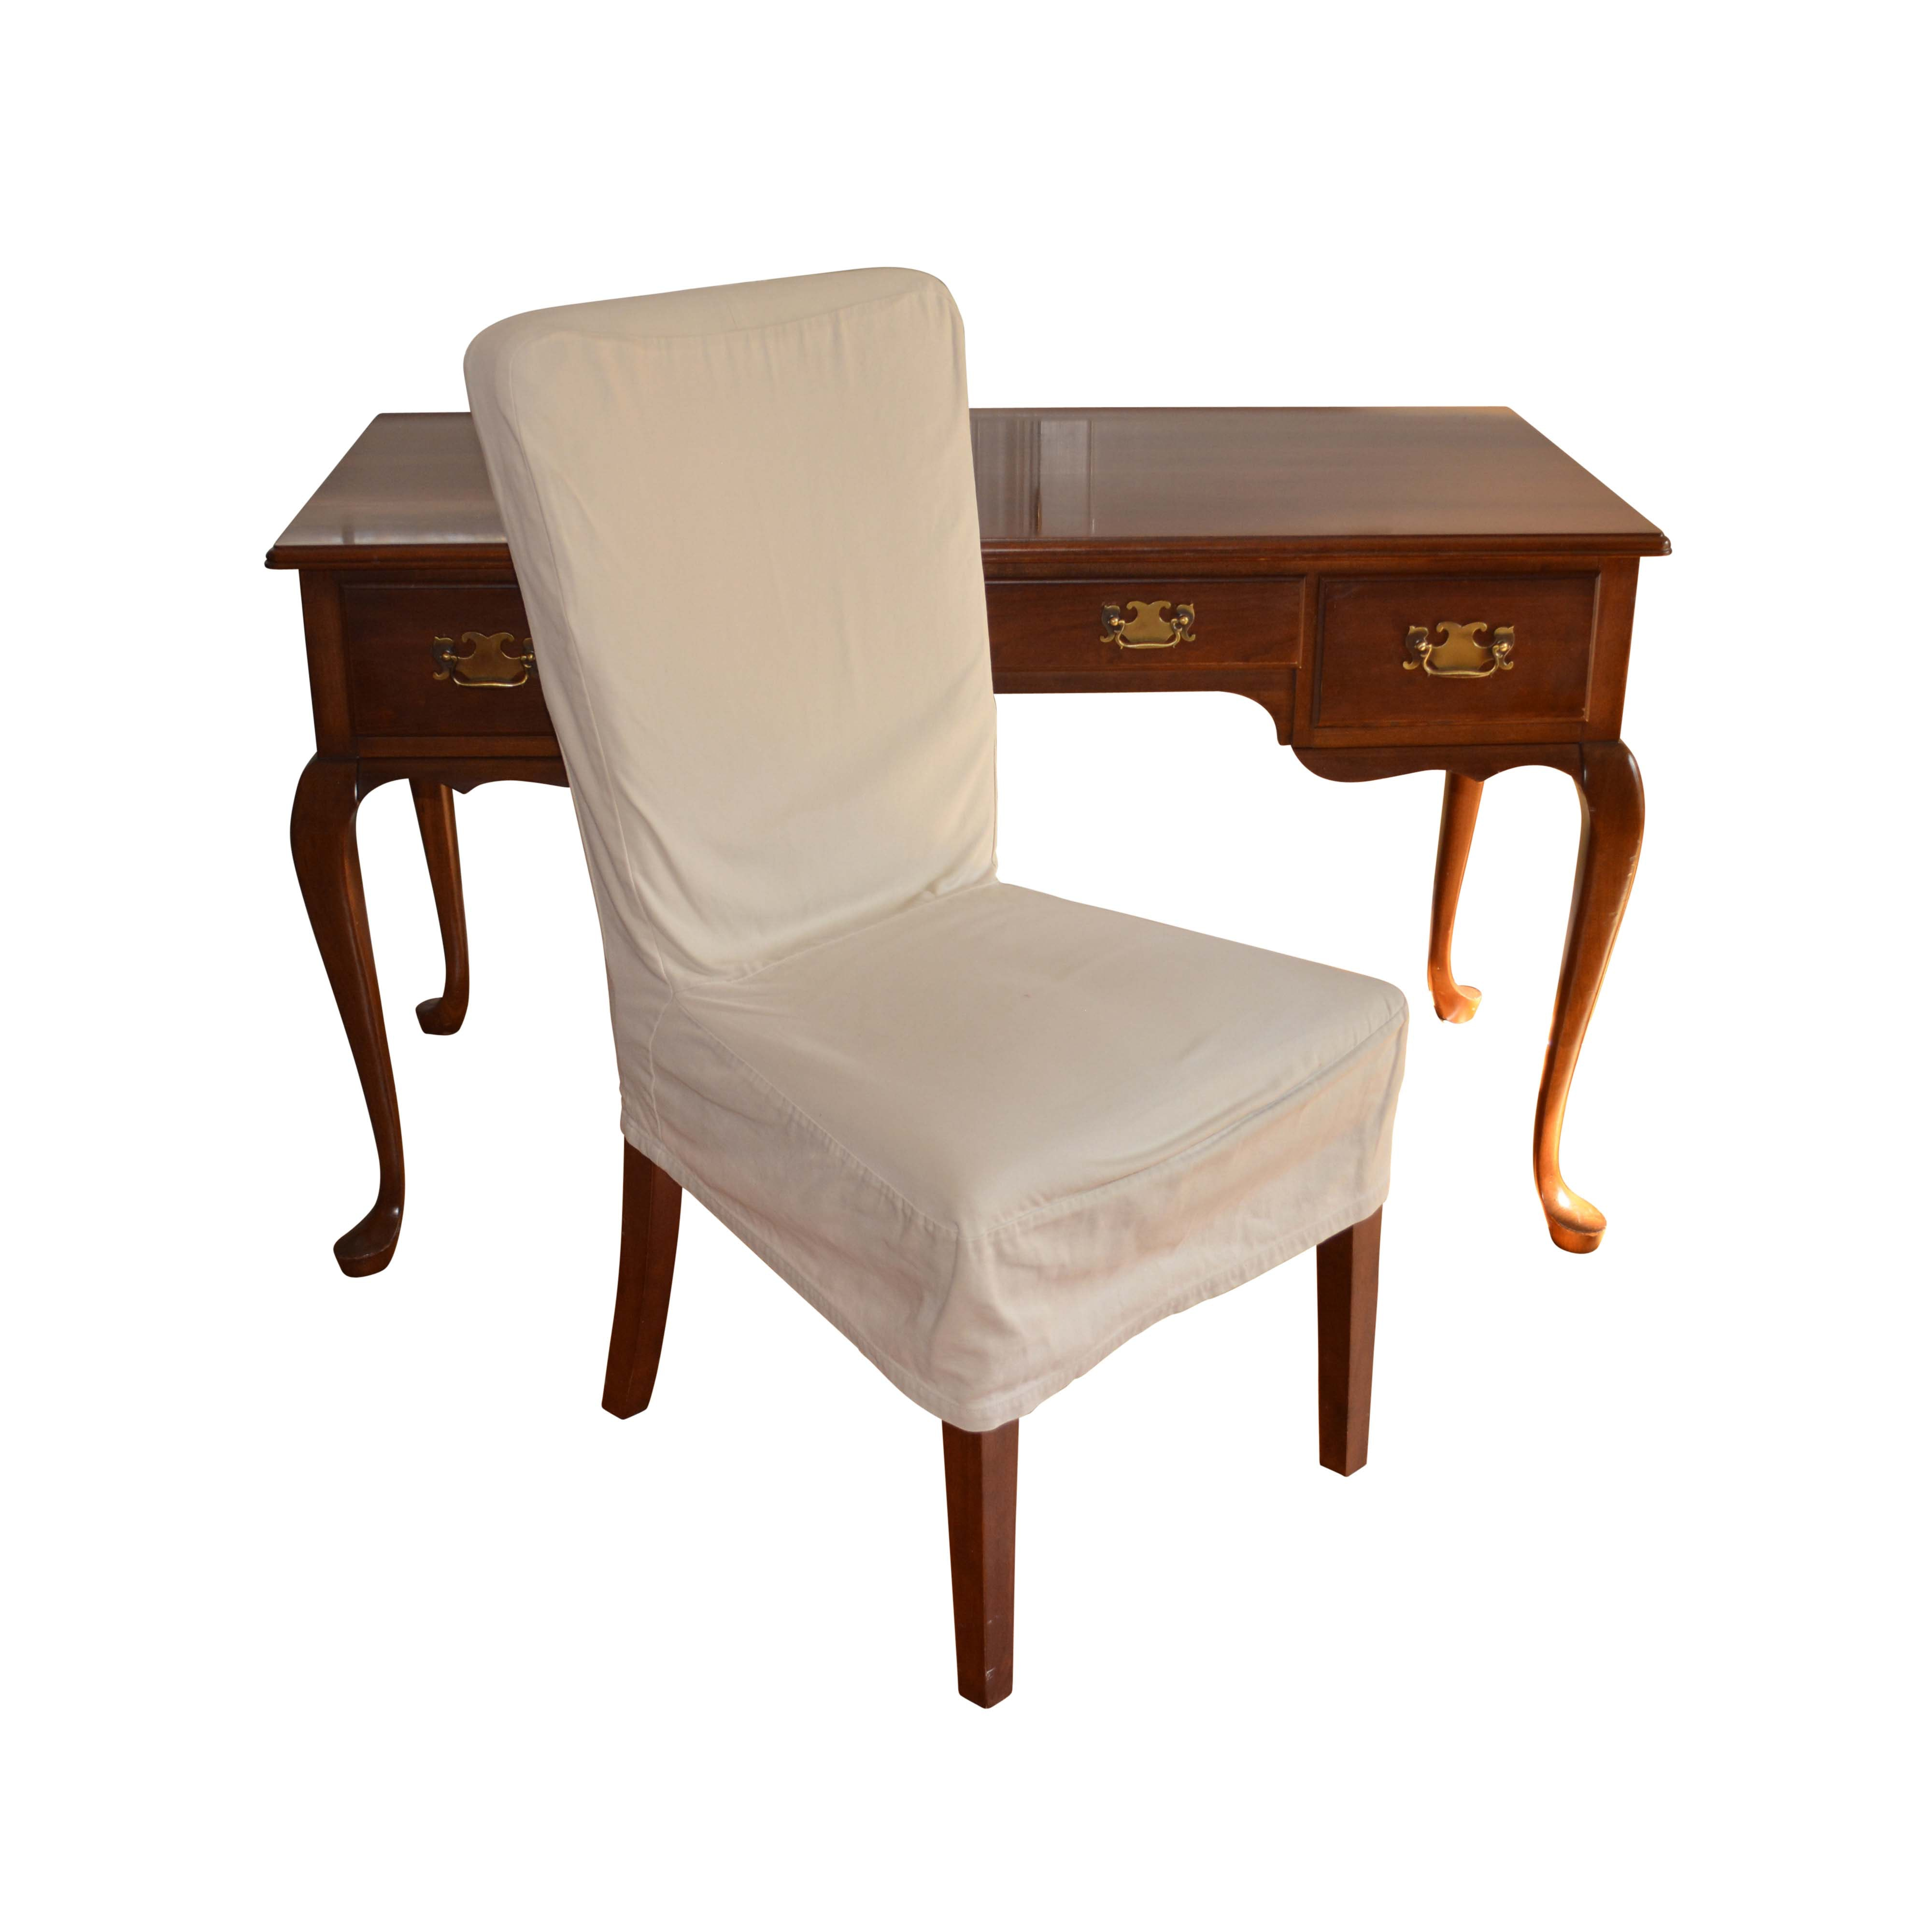 Queen Anne Style Cherry Desk with Pottery Barn Chair